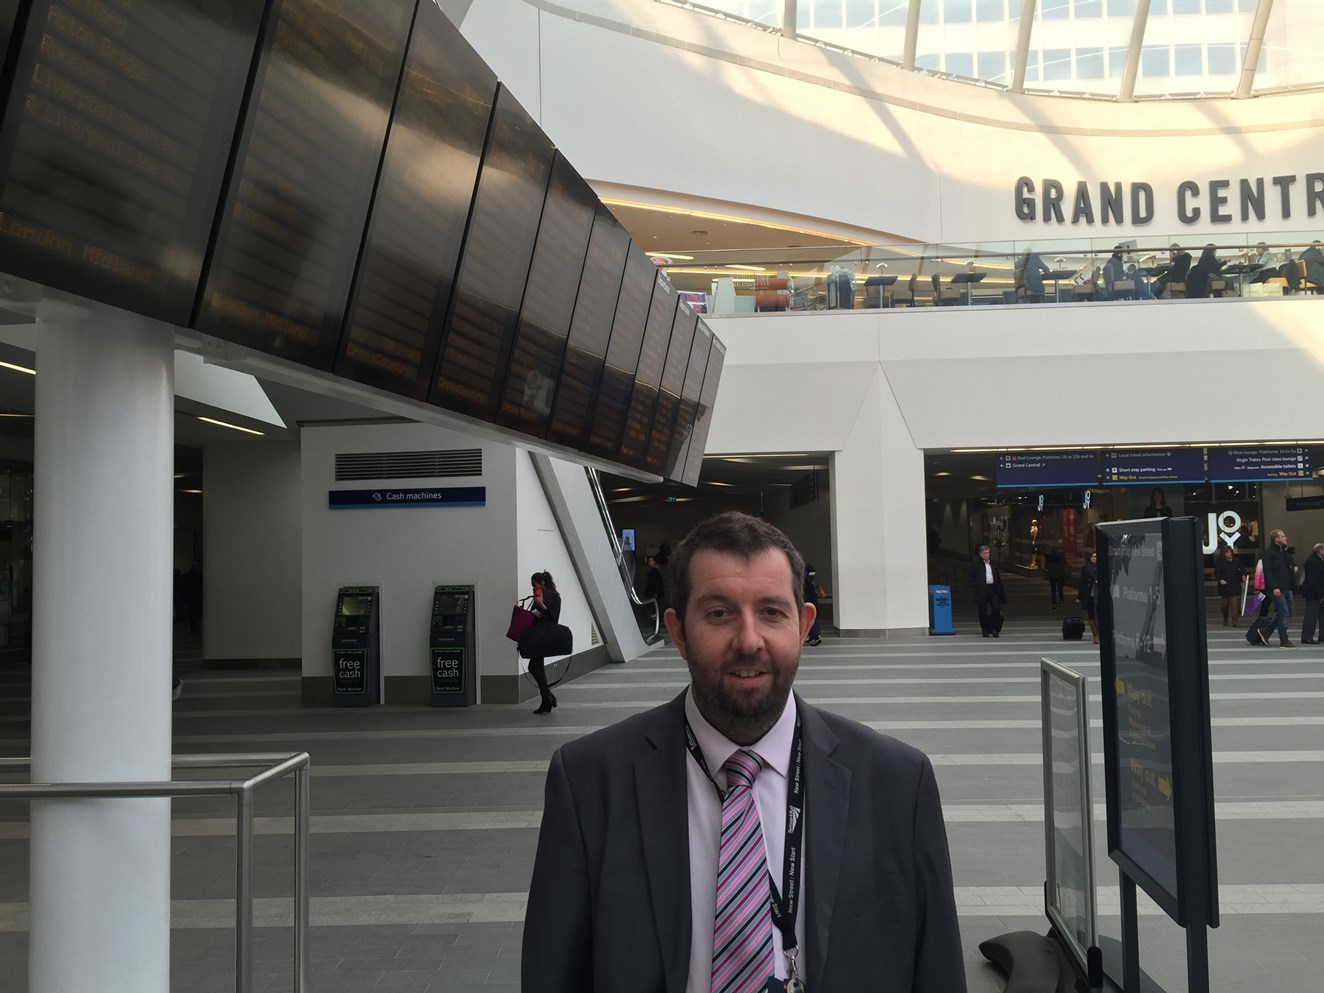 'Ta ra, bab' – Birmingham New Street loses its voice as station announcer moves on after 30 years: Andy Smith